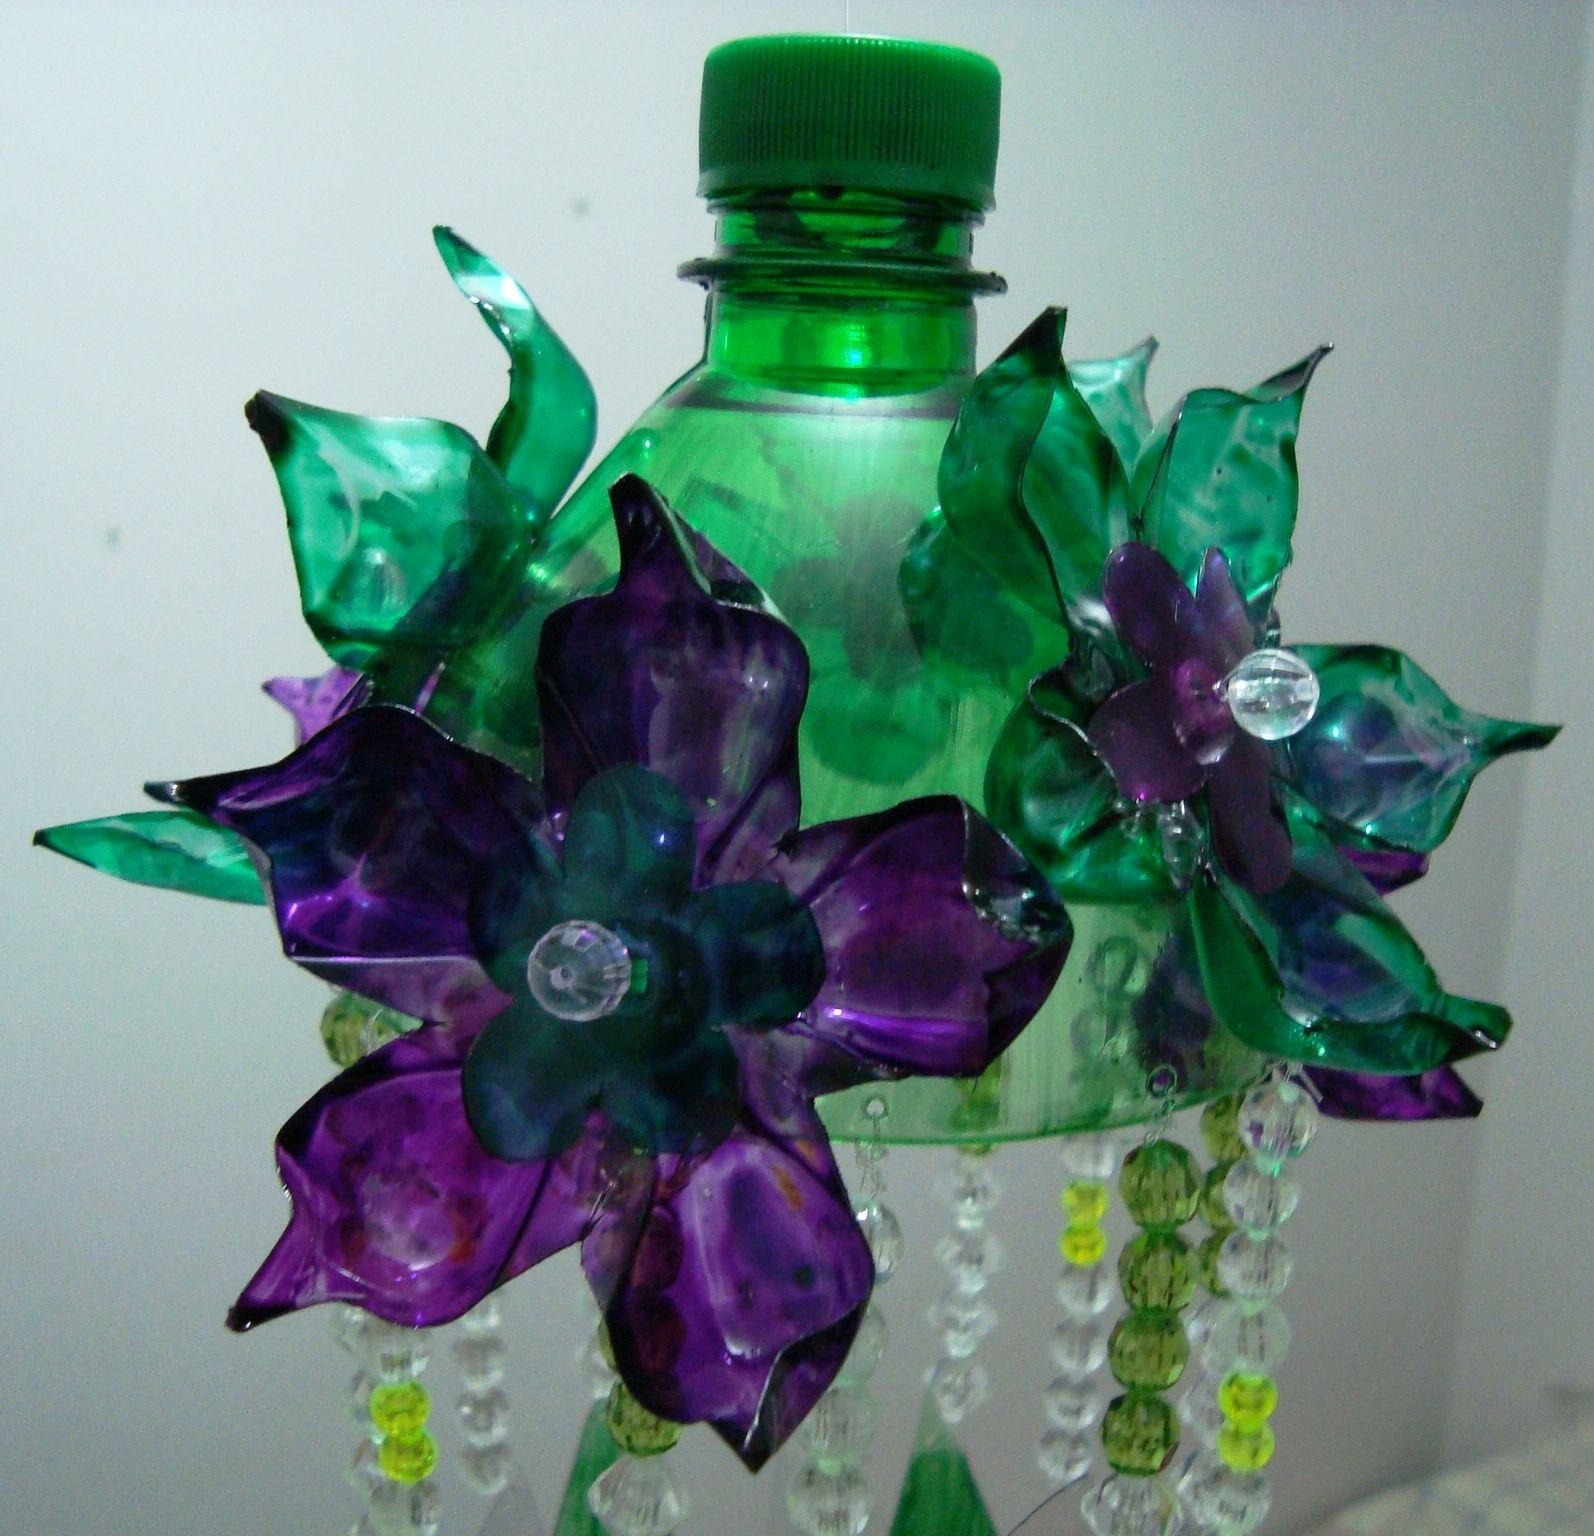 Recycled Plastic Bottle: Recycle, Reuse, Repurpose